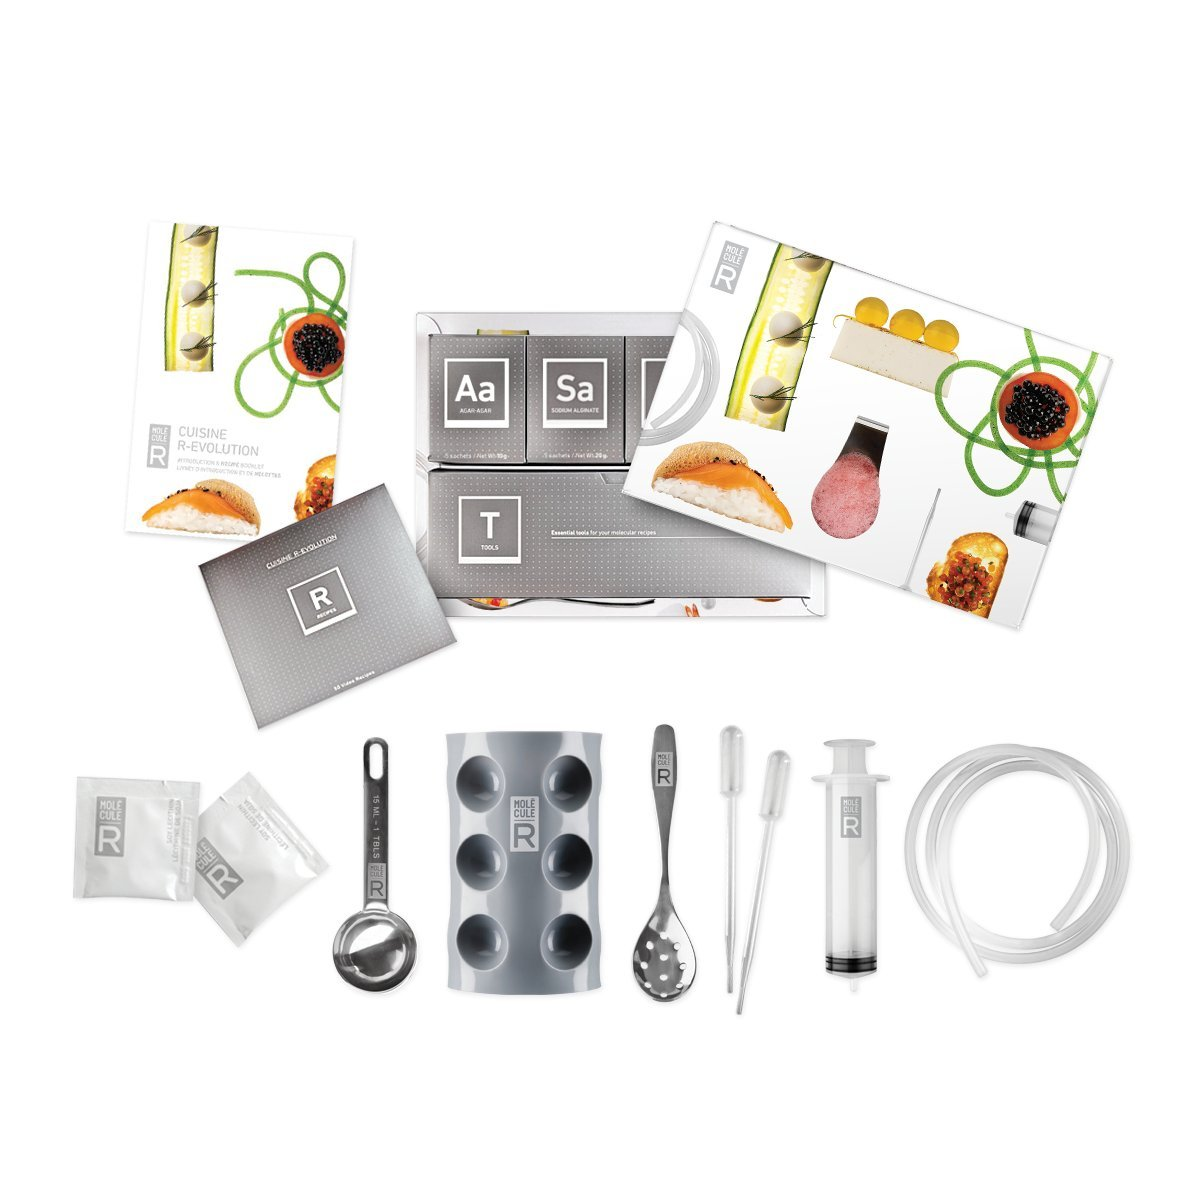 molecular gastronomy cuisine r evolution kit bar molecule r with recipe dvd gift ebay. Black Bedroom Furniture Sets. Home Design Ideas